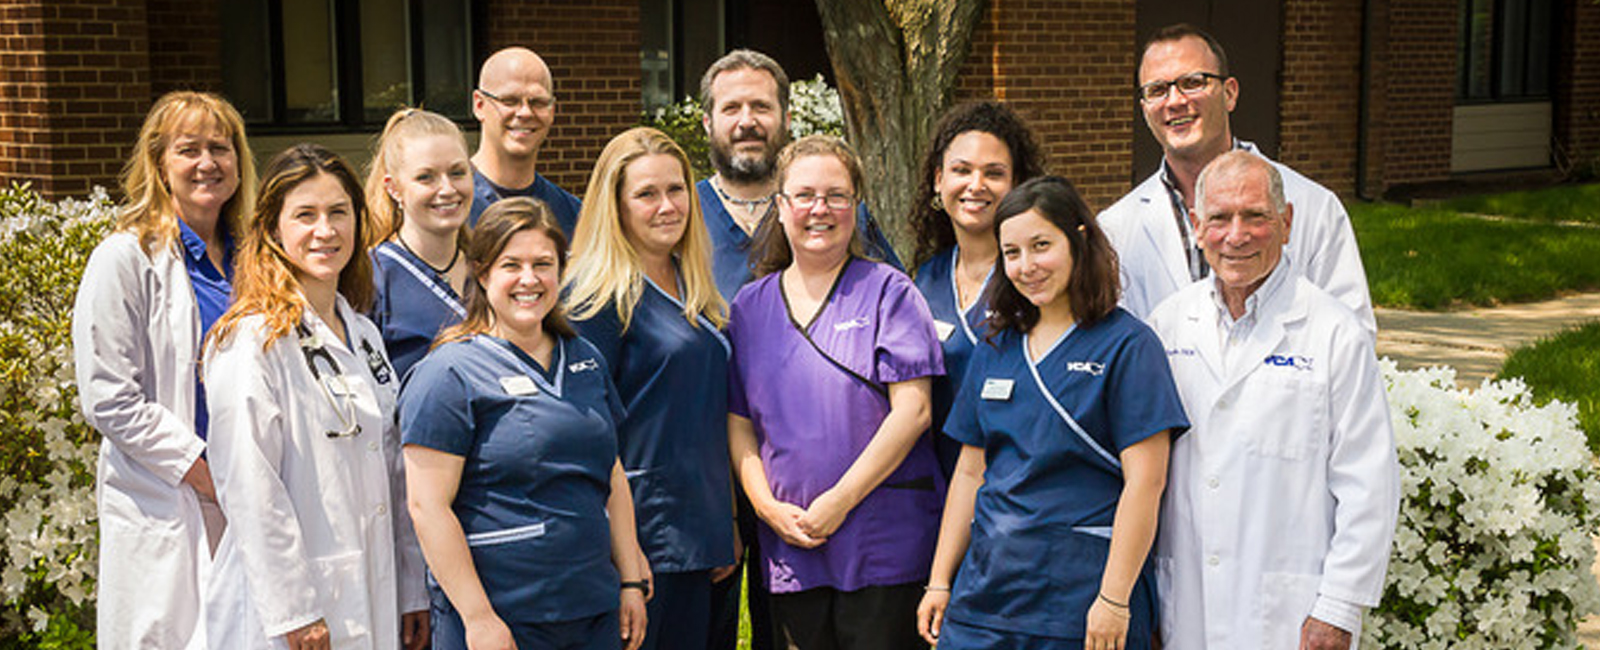 Homepage Team Picture of  VCA Columbia Hickory Ridge Animal Hospital